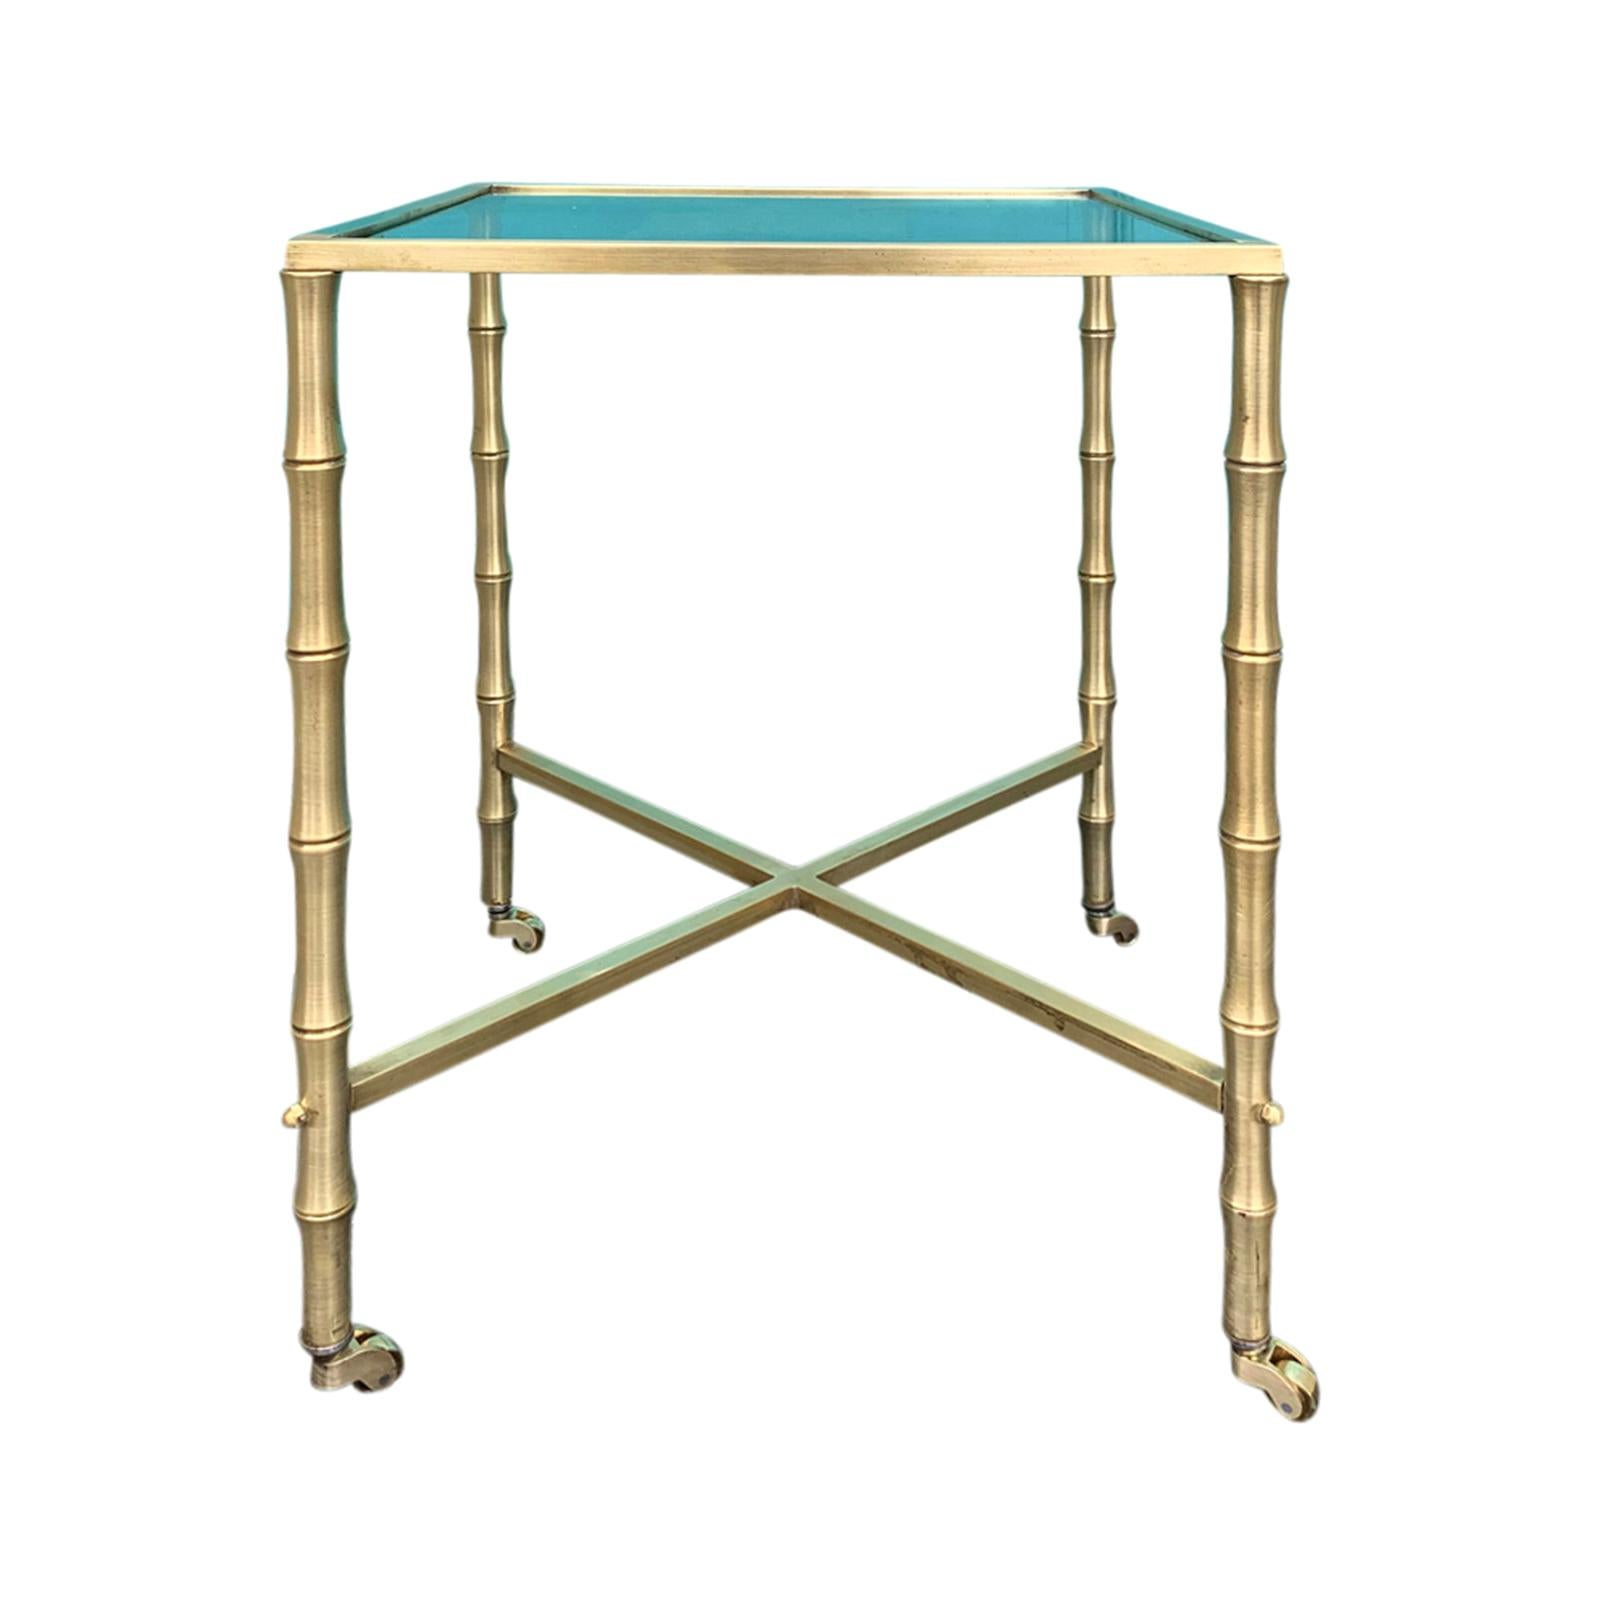 Mid-20th Century Brass Faux Bamboo Side Table, Glass Top